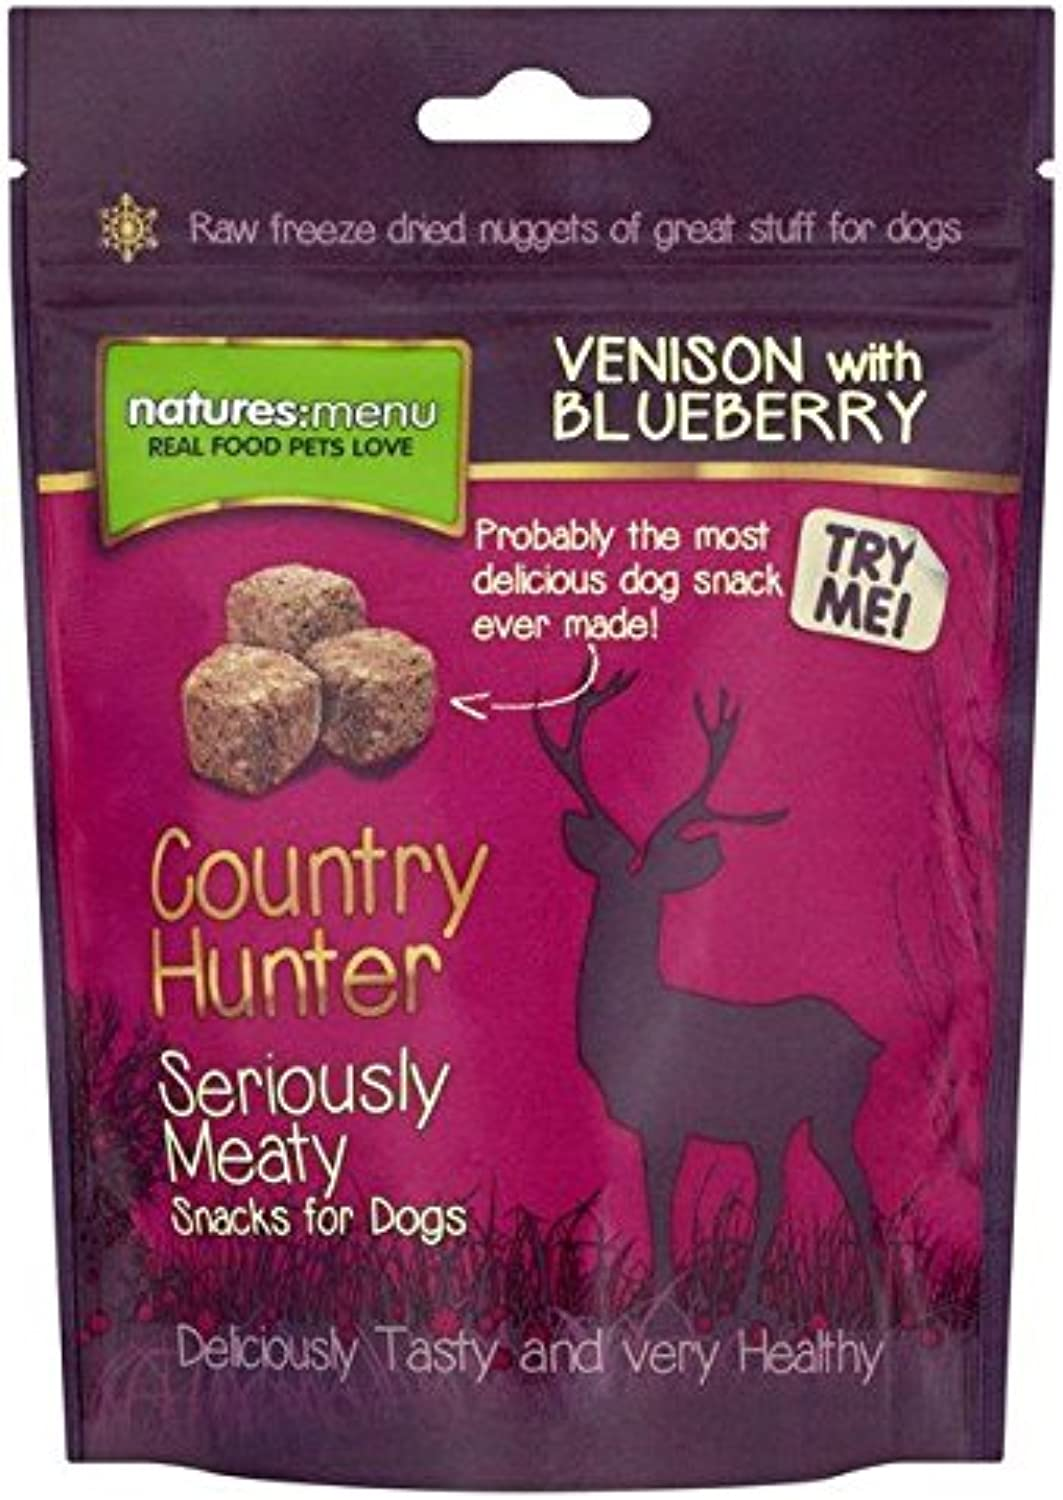 Natures Menu Country Hunter Venison & blueeberry Freeze Dried Snack for Dogs 50g (PACK OF 6)